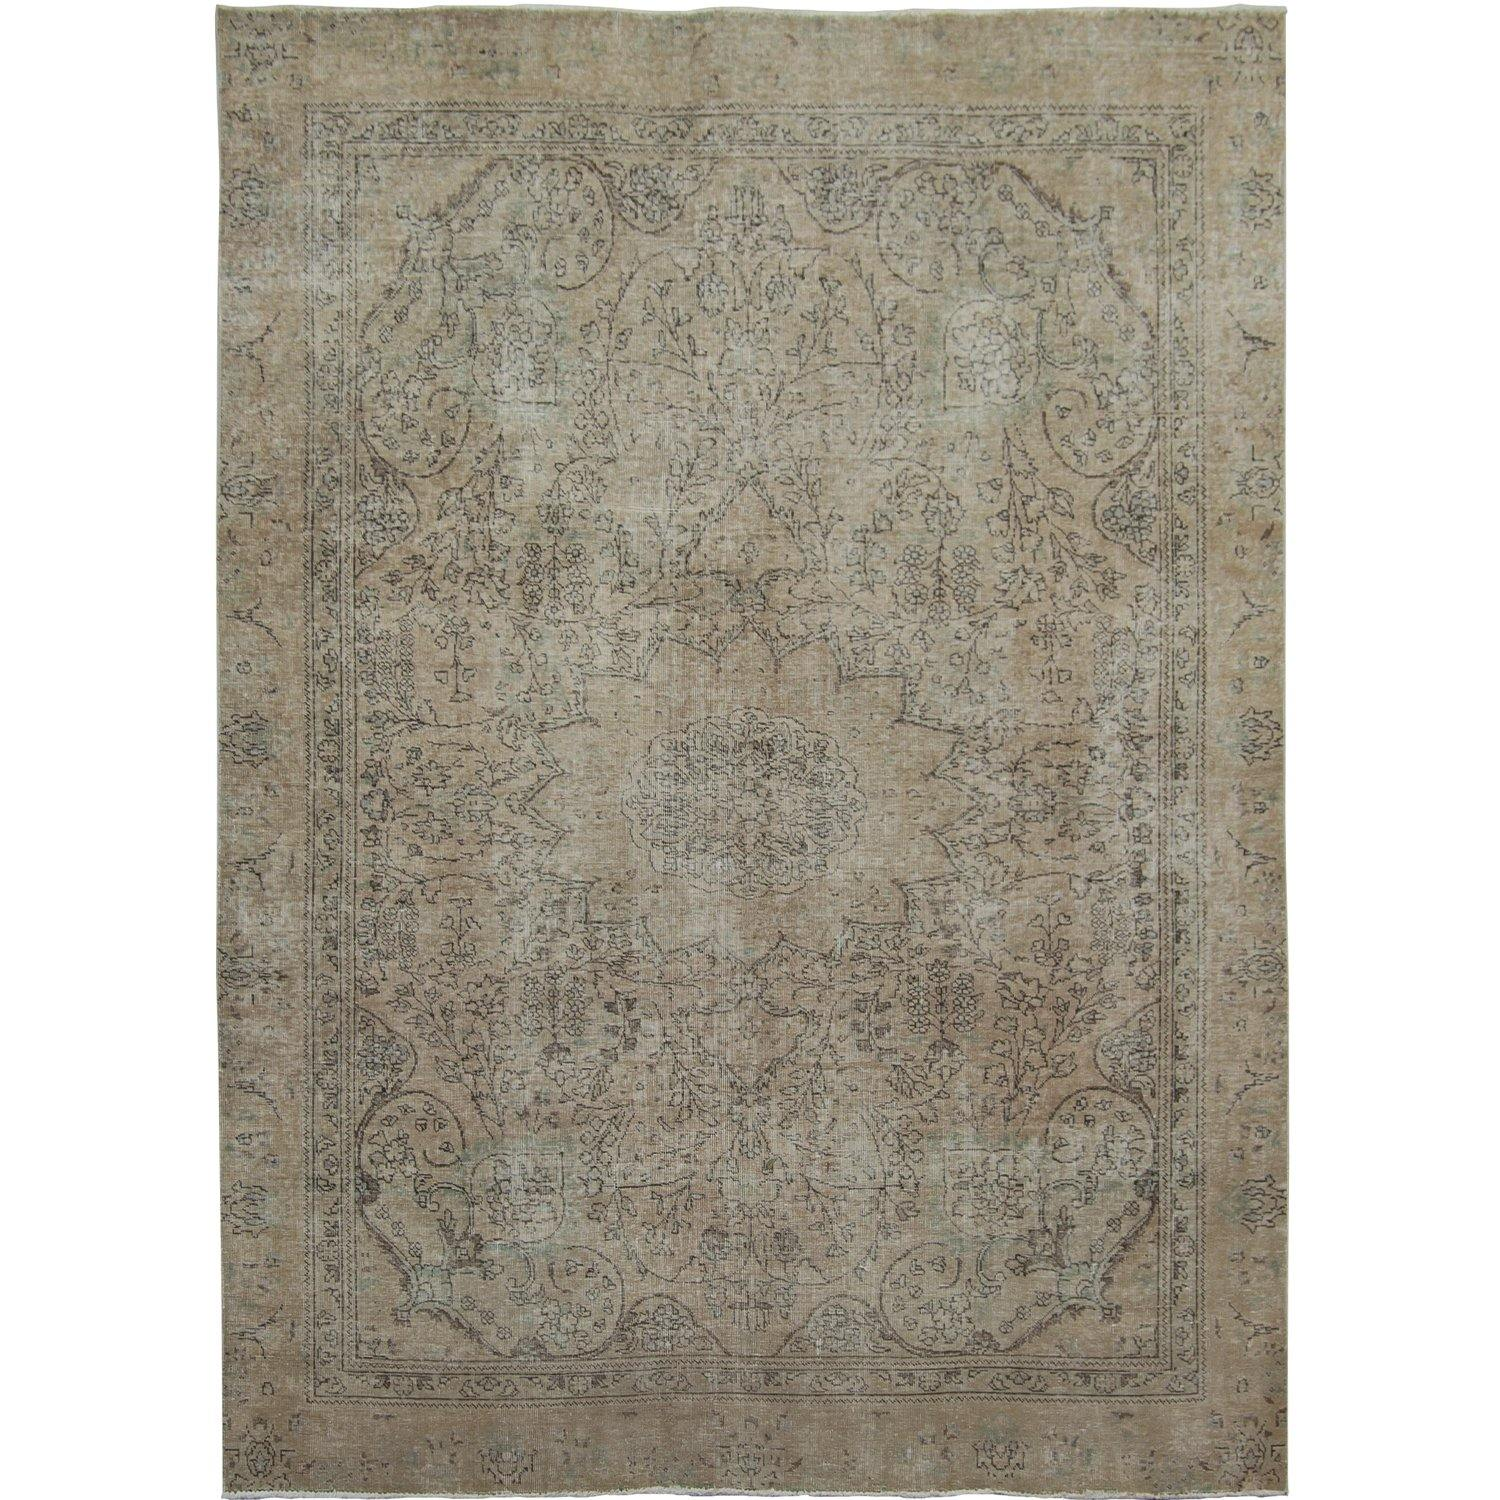 Vintage Persian Hand-knotted Wool Rug 230cm x 314cm Persian-Rug | House-of-Haghi | NewMarket | Auckland | NZ | Handmade Persian Rugs | Hand Knotted Persian Rugs